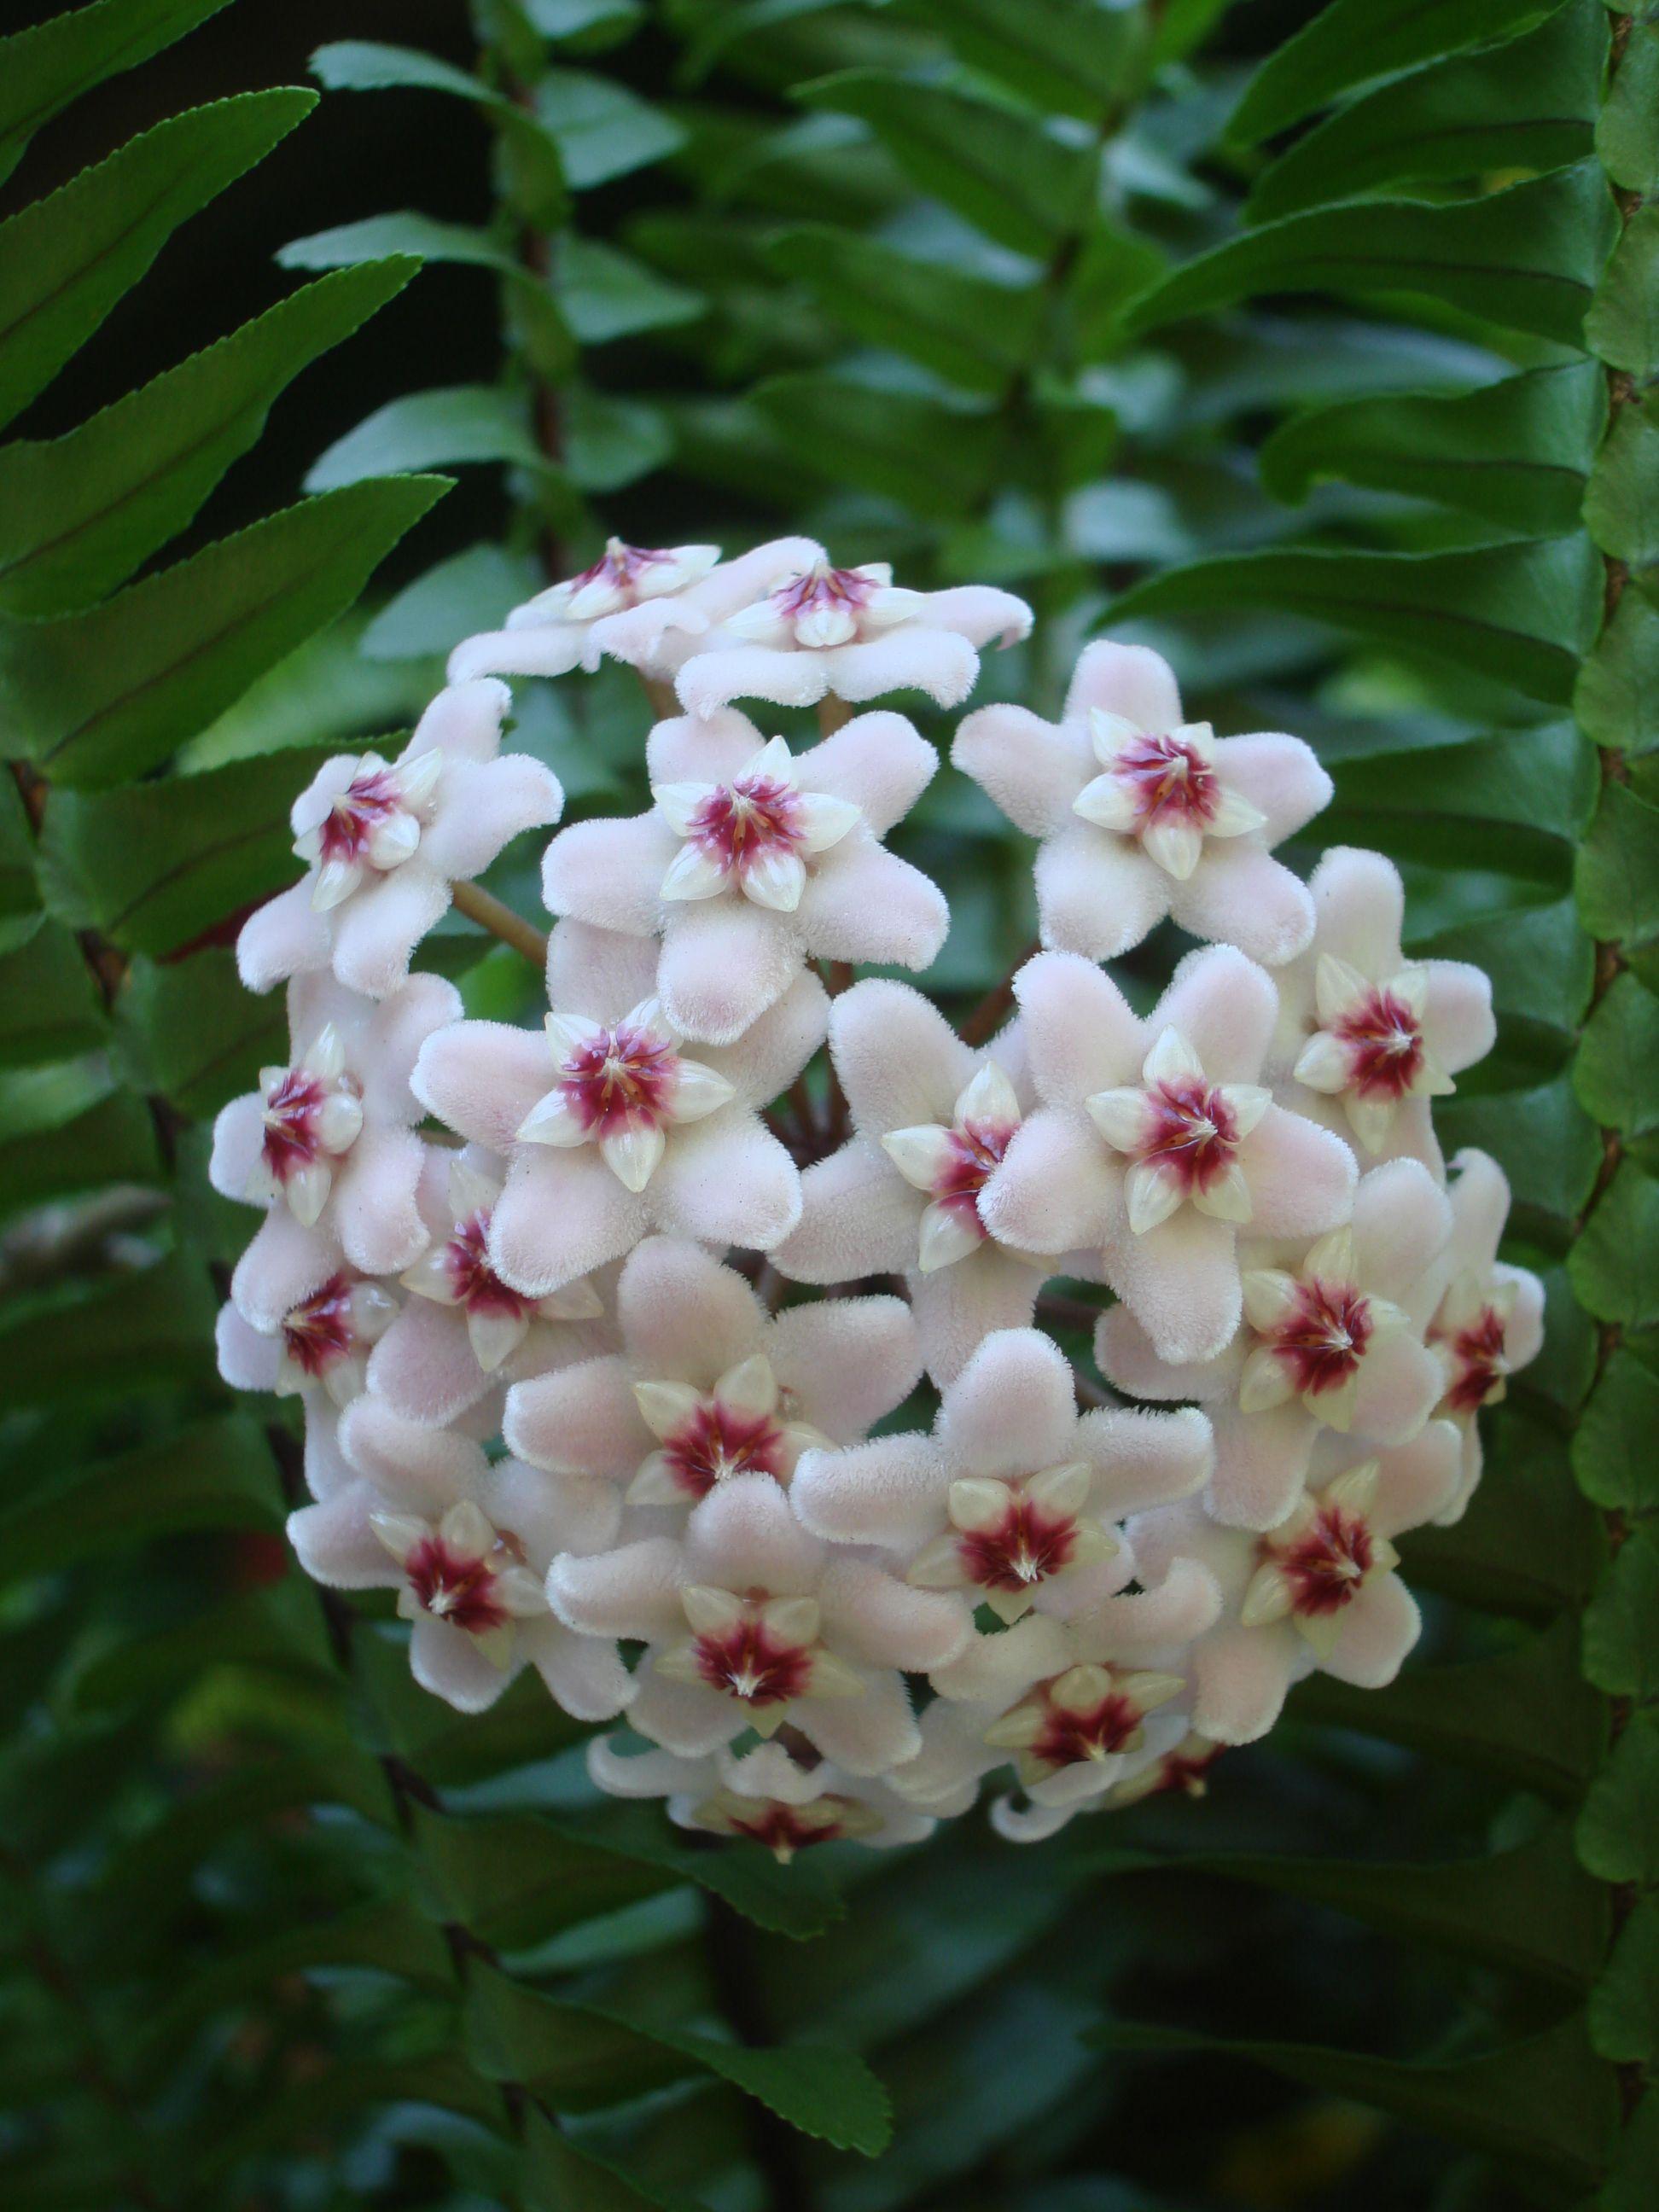 Hoya Carnosa Or Wax Plant Apocynaceae Family It Is Native To